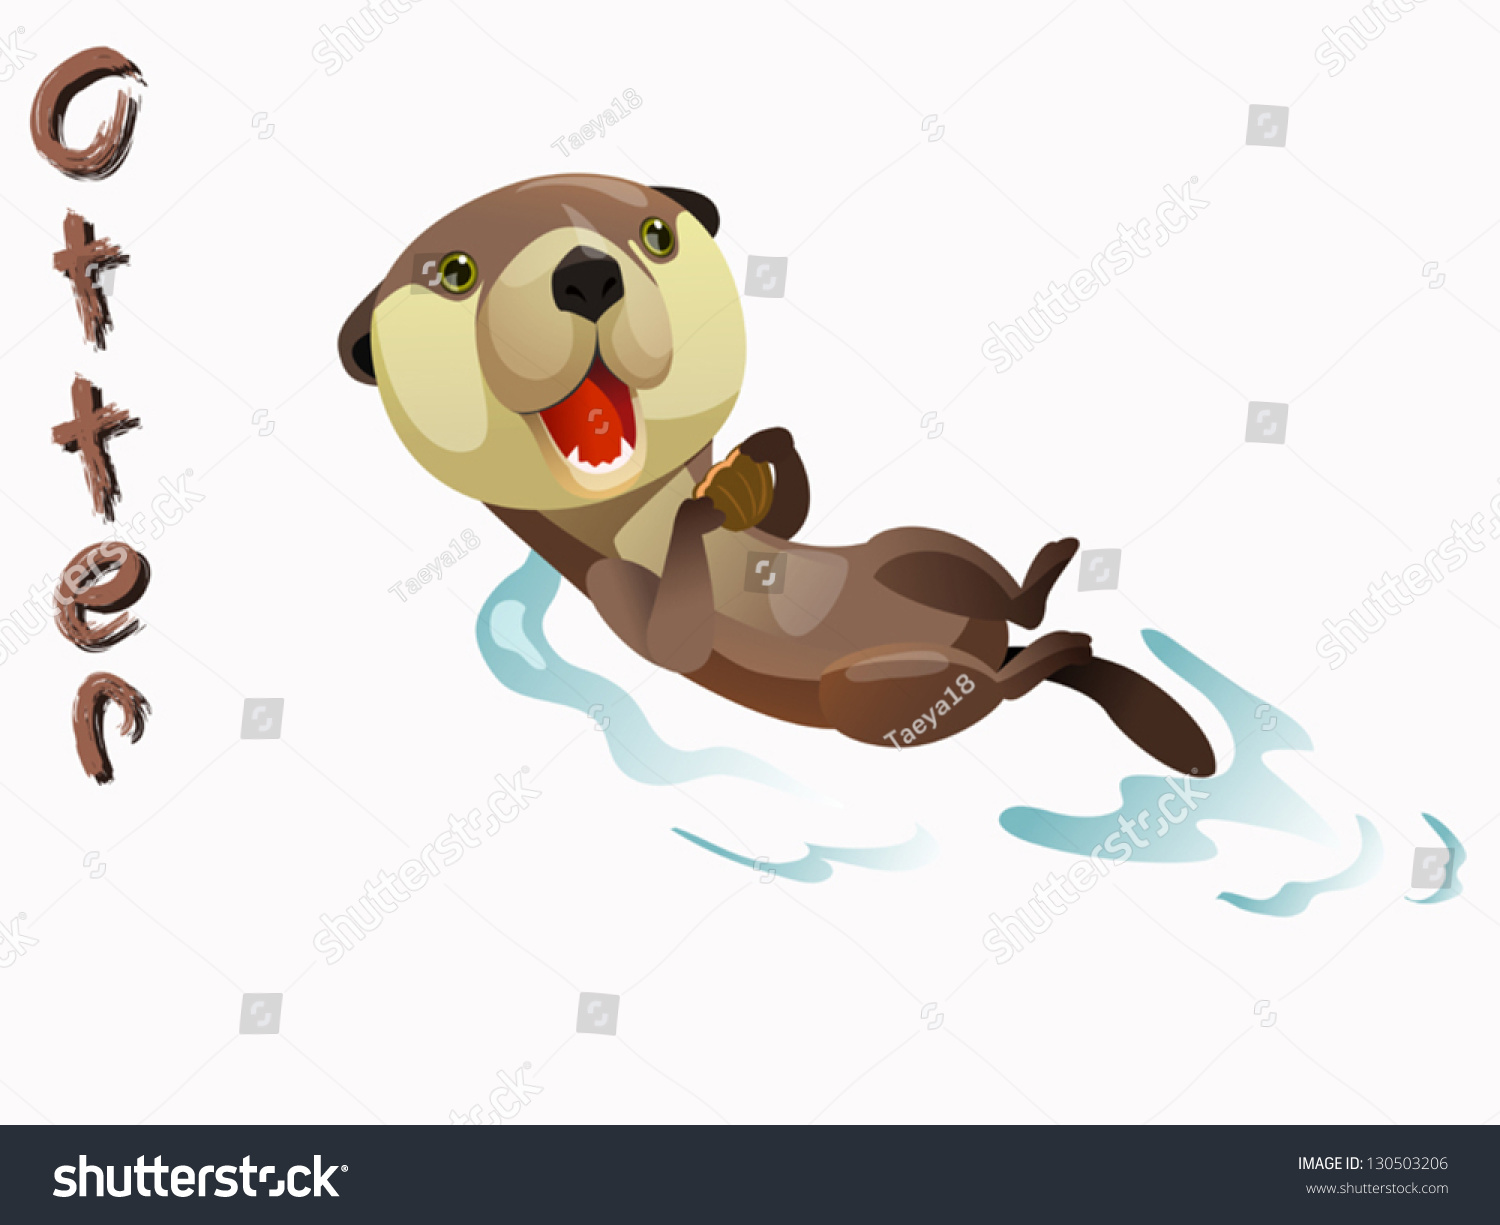 cute otter cartoon vector standing on white background